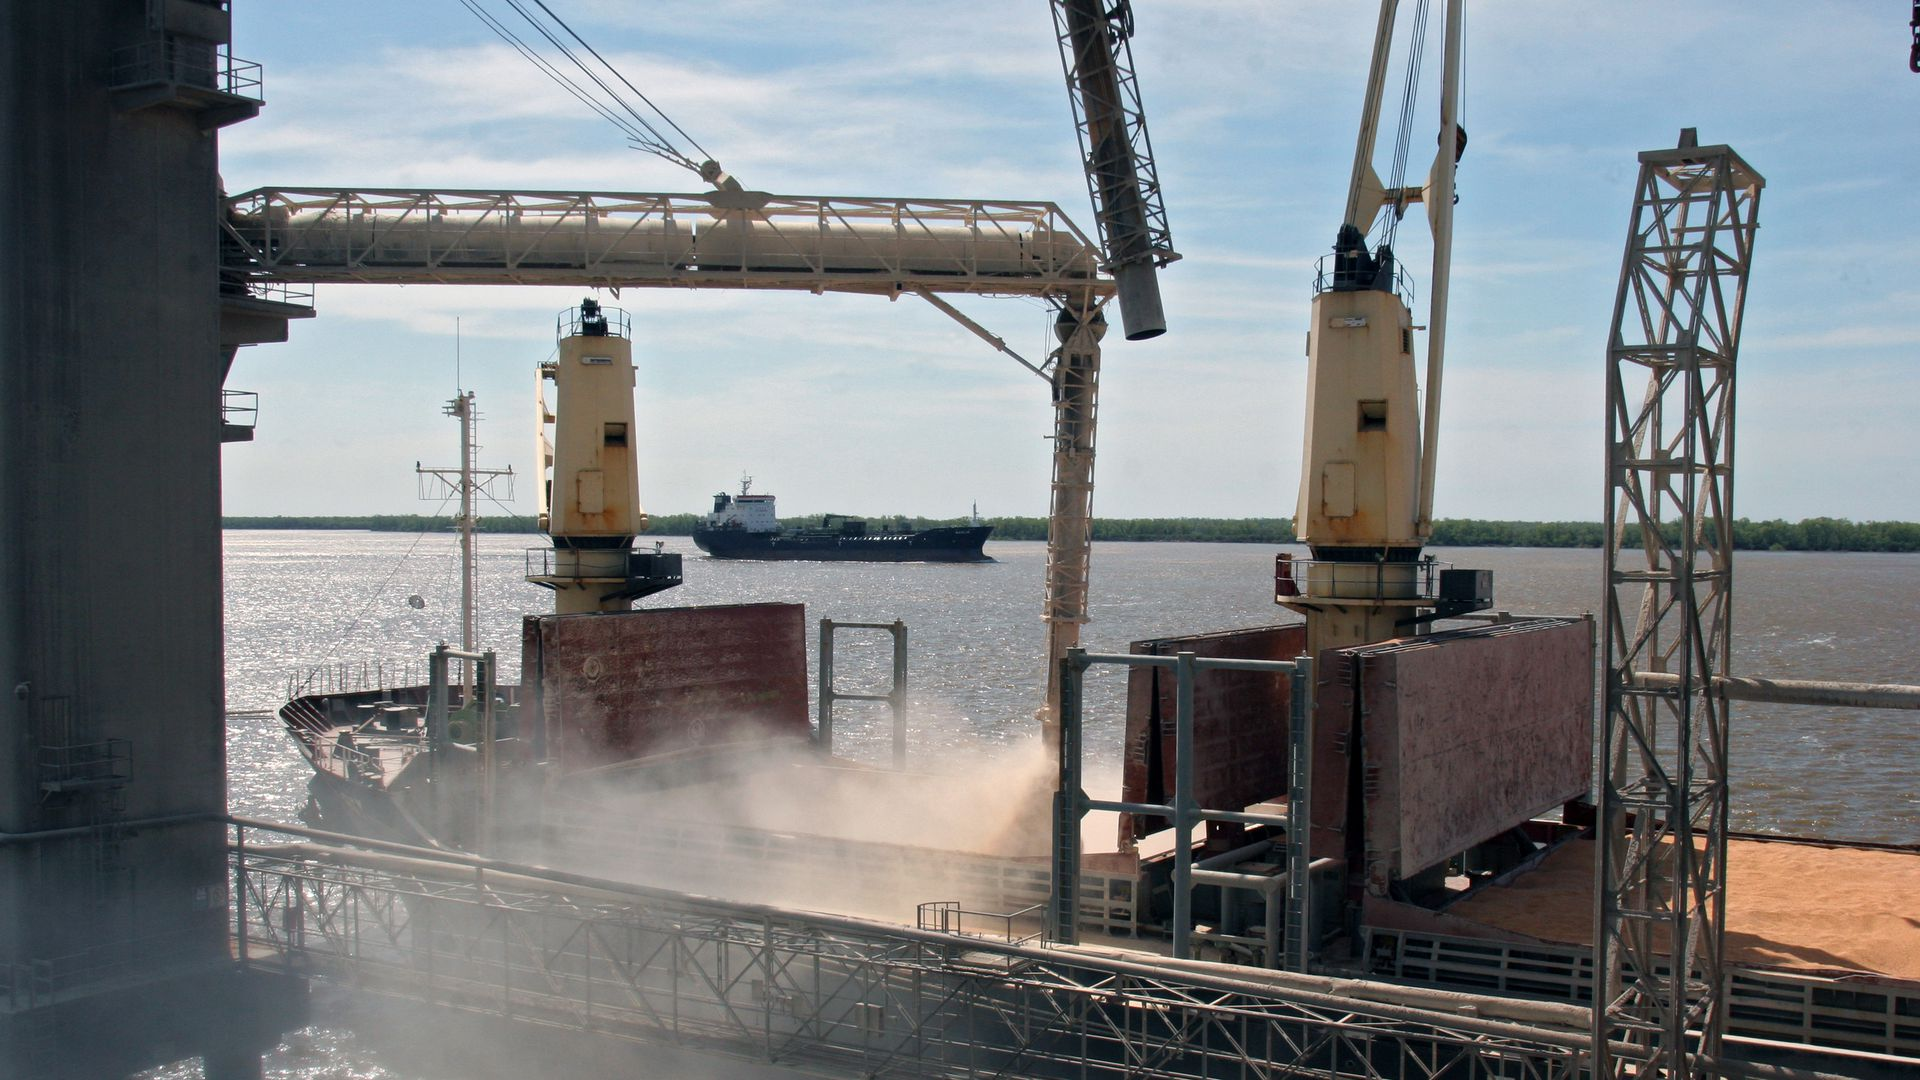 Soybeans being loaded onto a ship